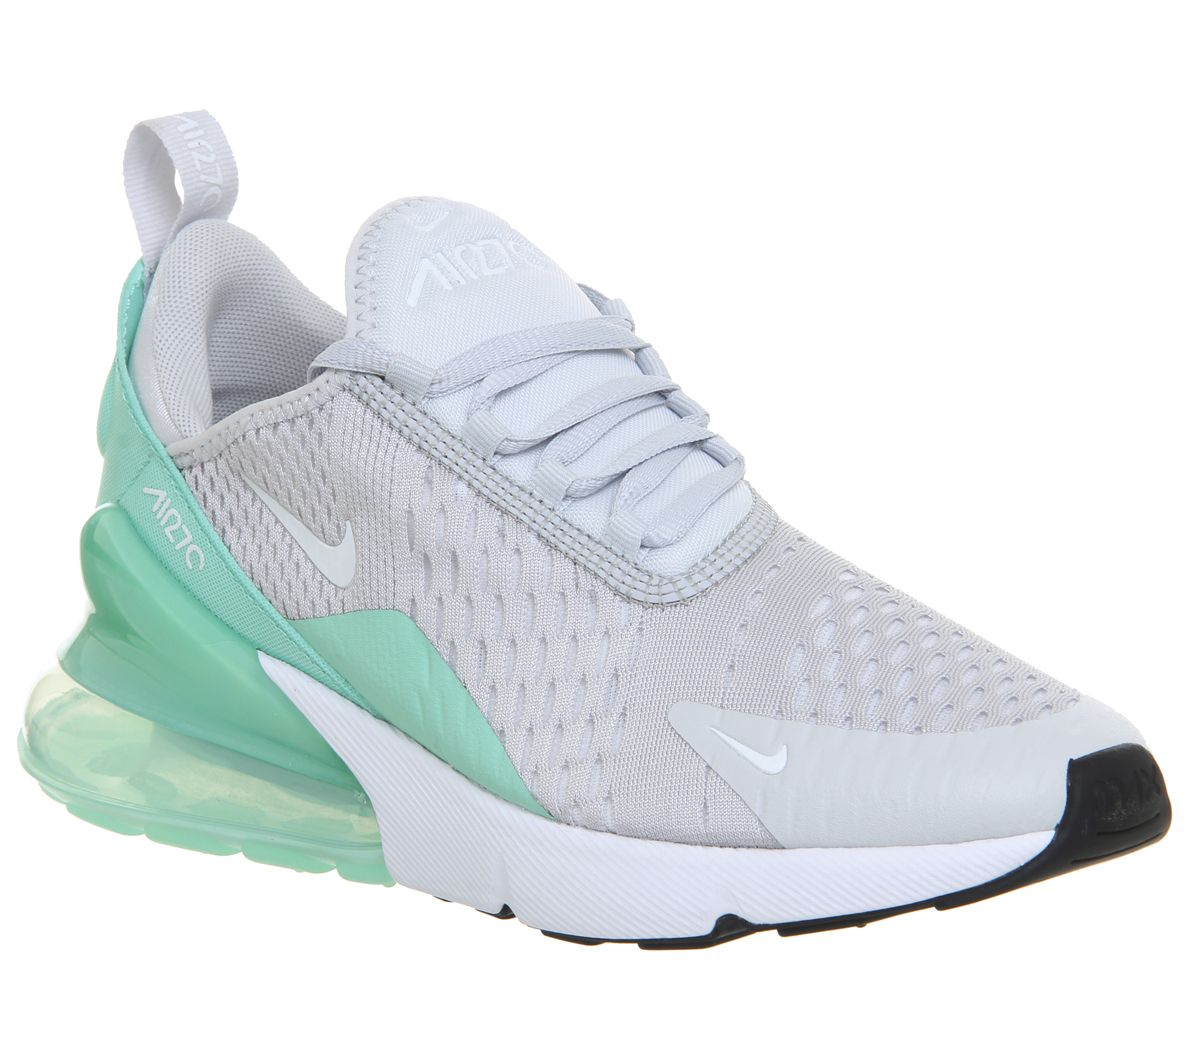 new product beb1d 3c300 Nike Air Max 270 Gs Trainers Pure Platinum White Emerald Rise - Unisex